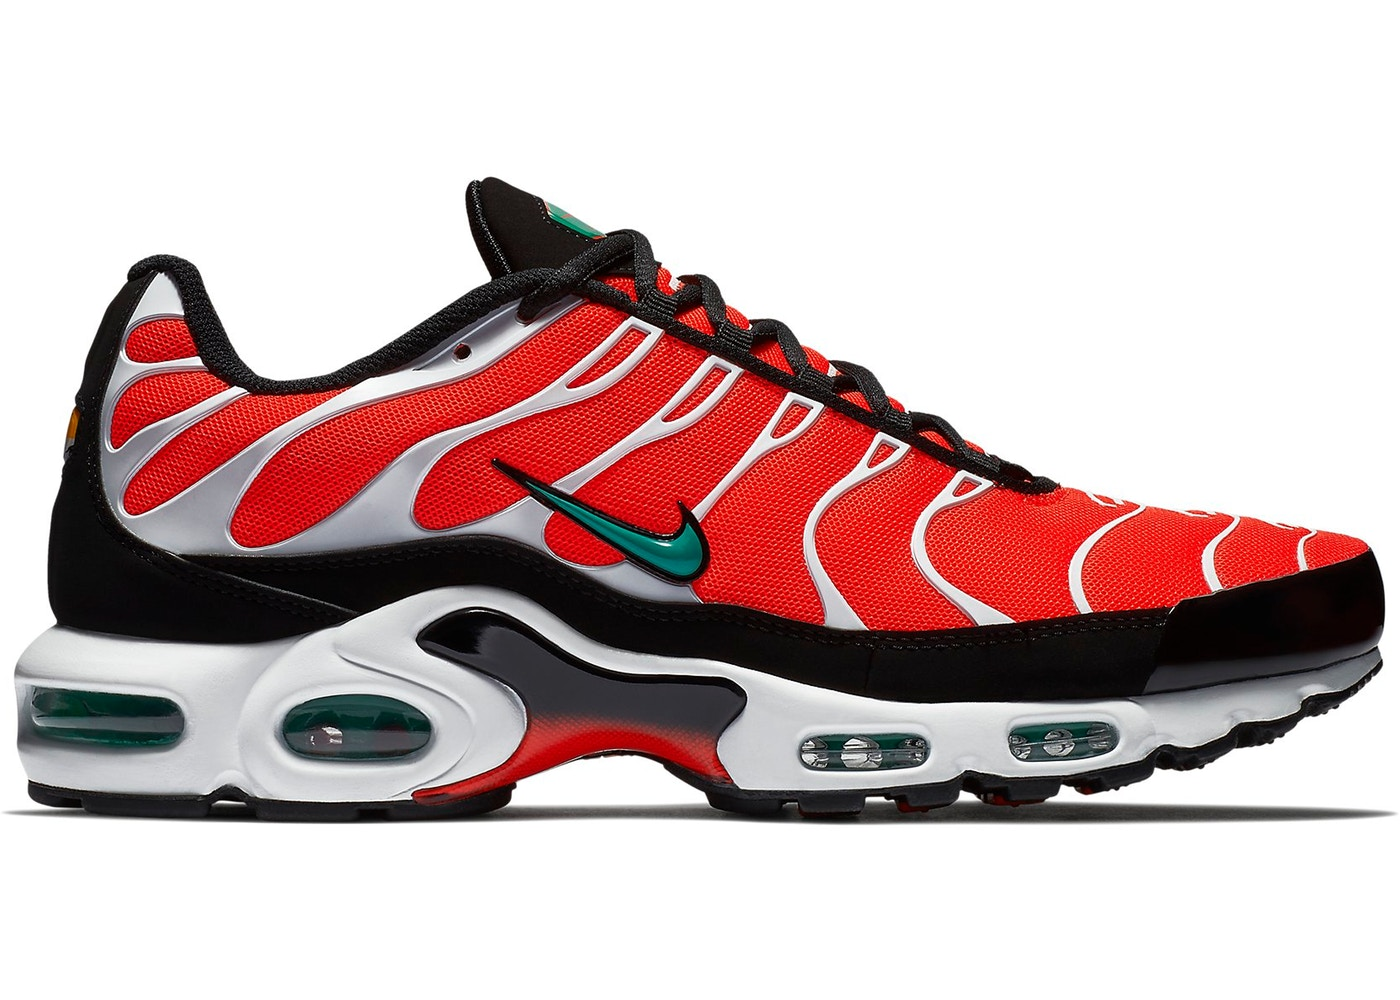 separation shoes b3453 508db Air Max Plus Team Orange Neptune Green